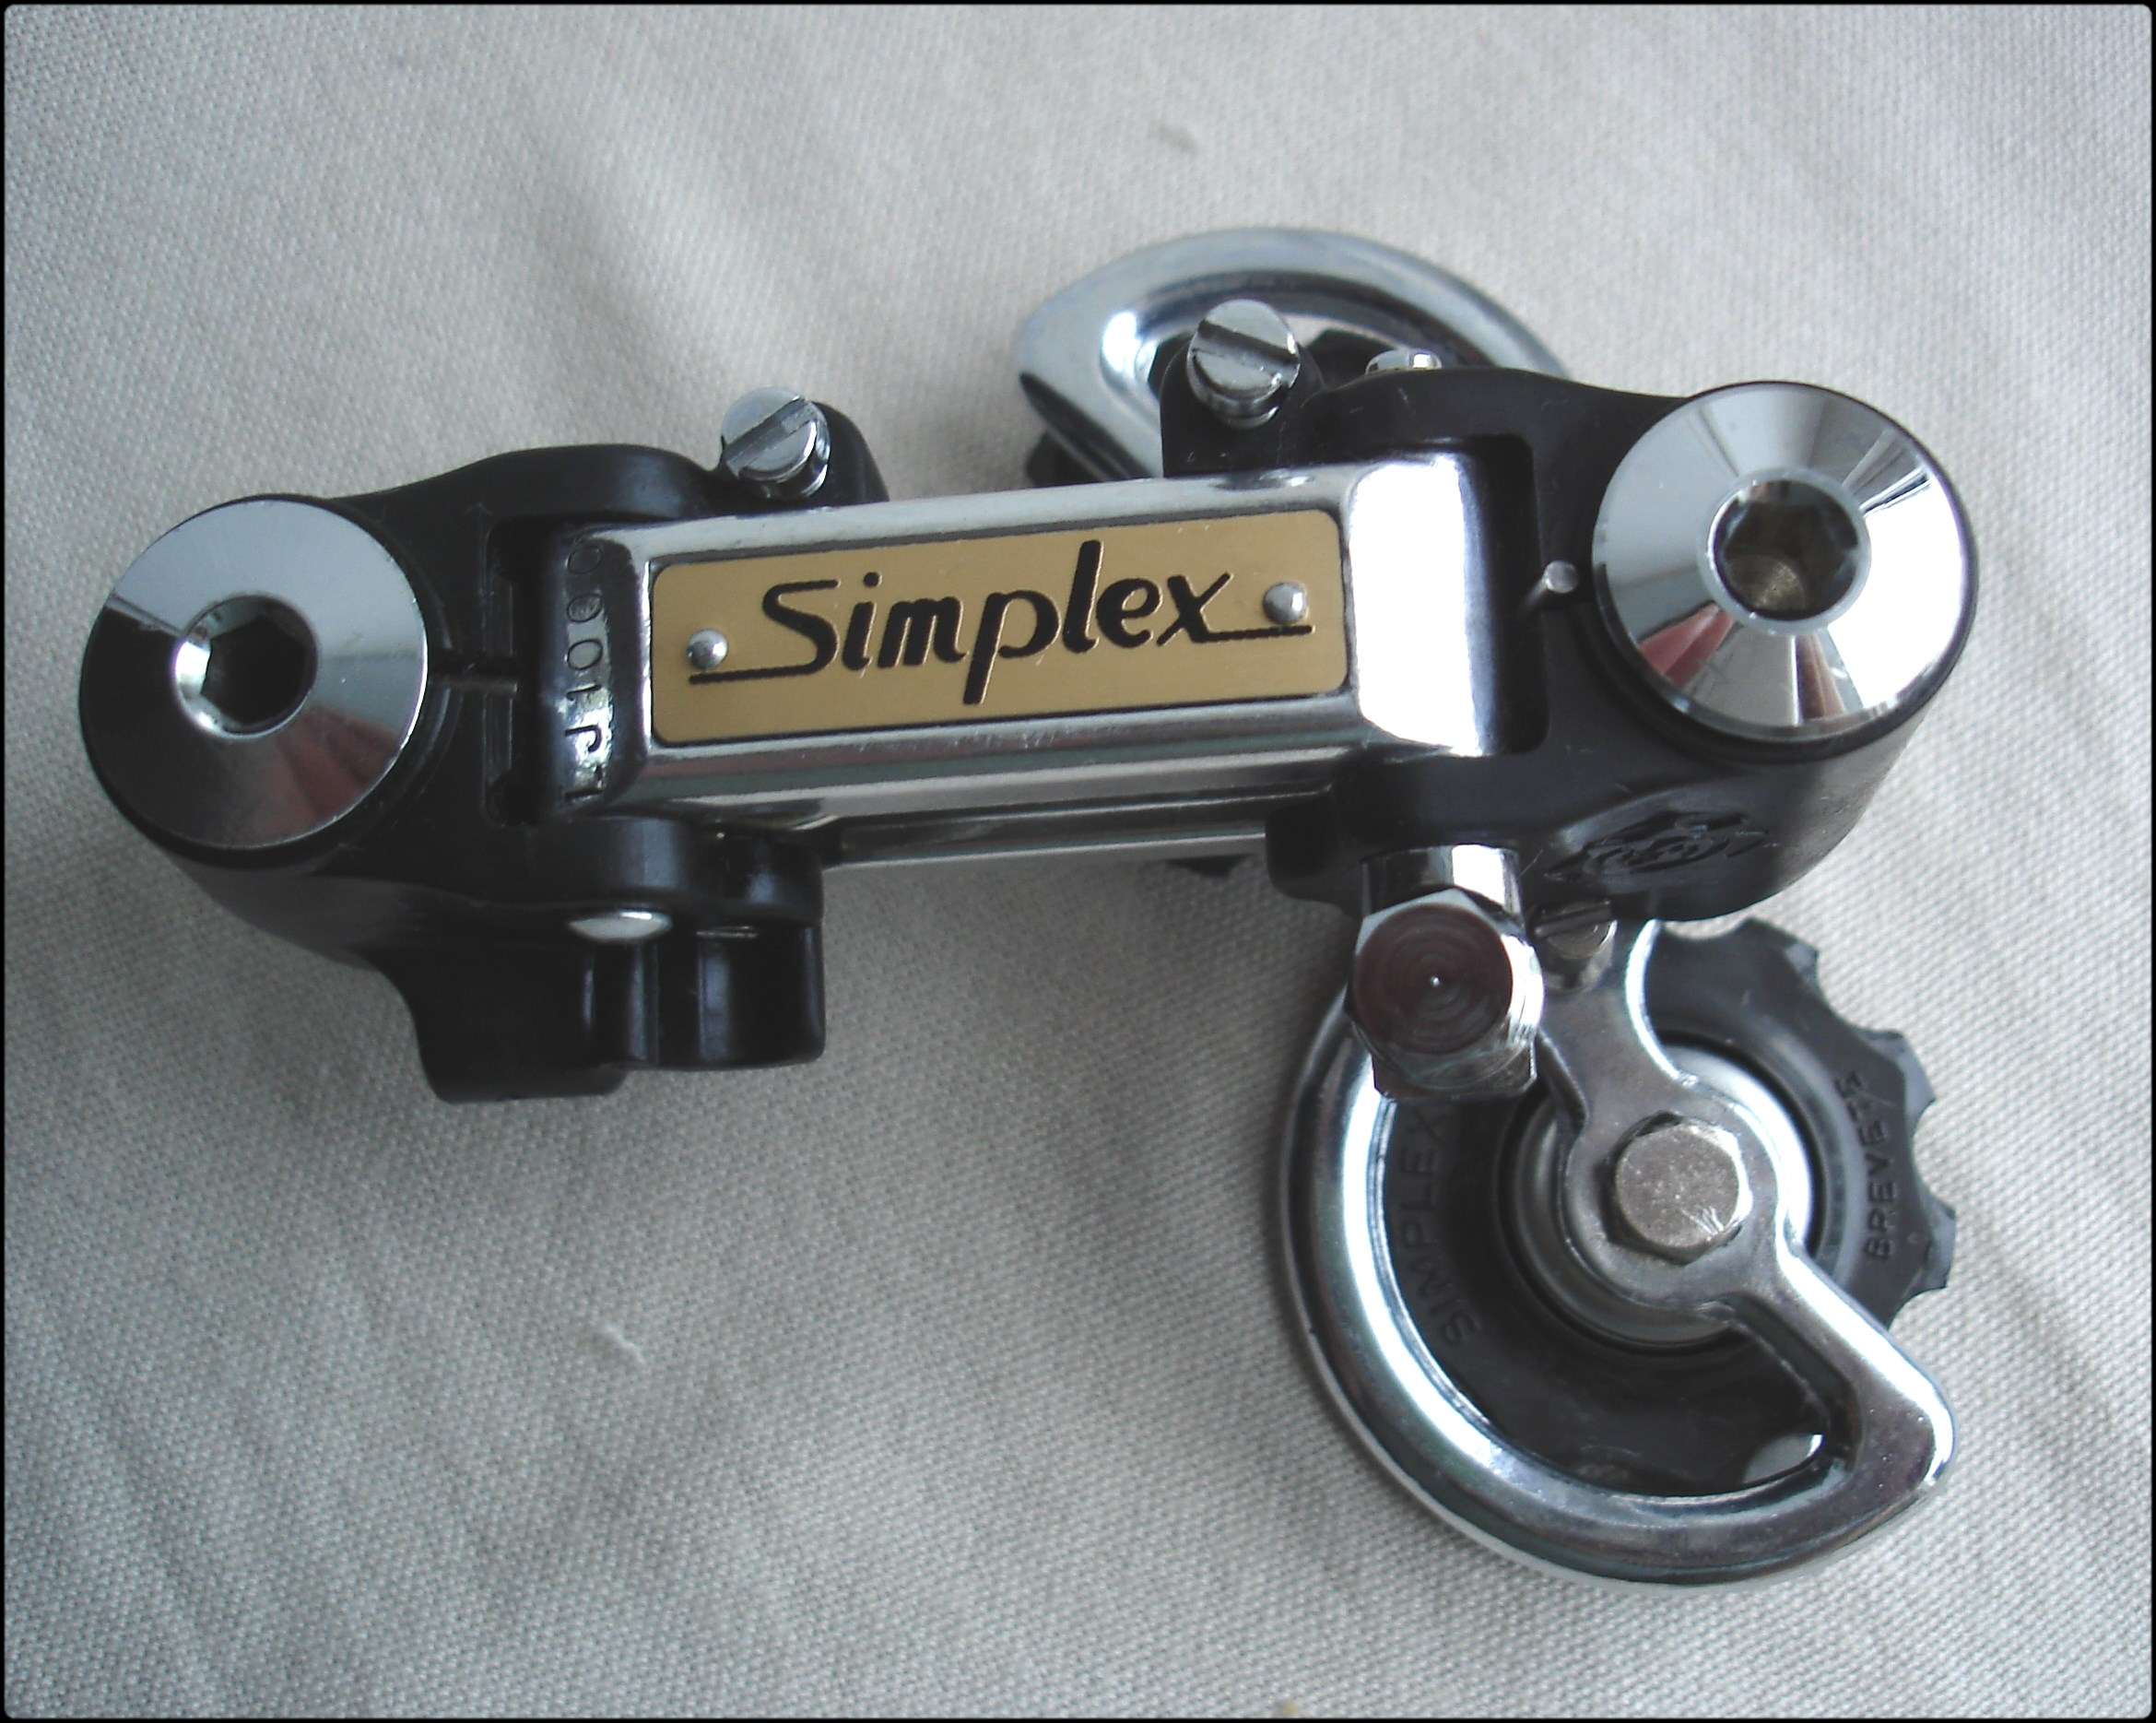 Simplex Lj 1000 Rear Derailleur Installation Peugeot Course Pb 12 Diagram Once The Retrofriction Levers Were Installed Next Logical Steps To Add Front And Derailleurs Back Onto Frameset